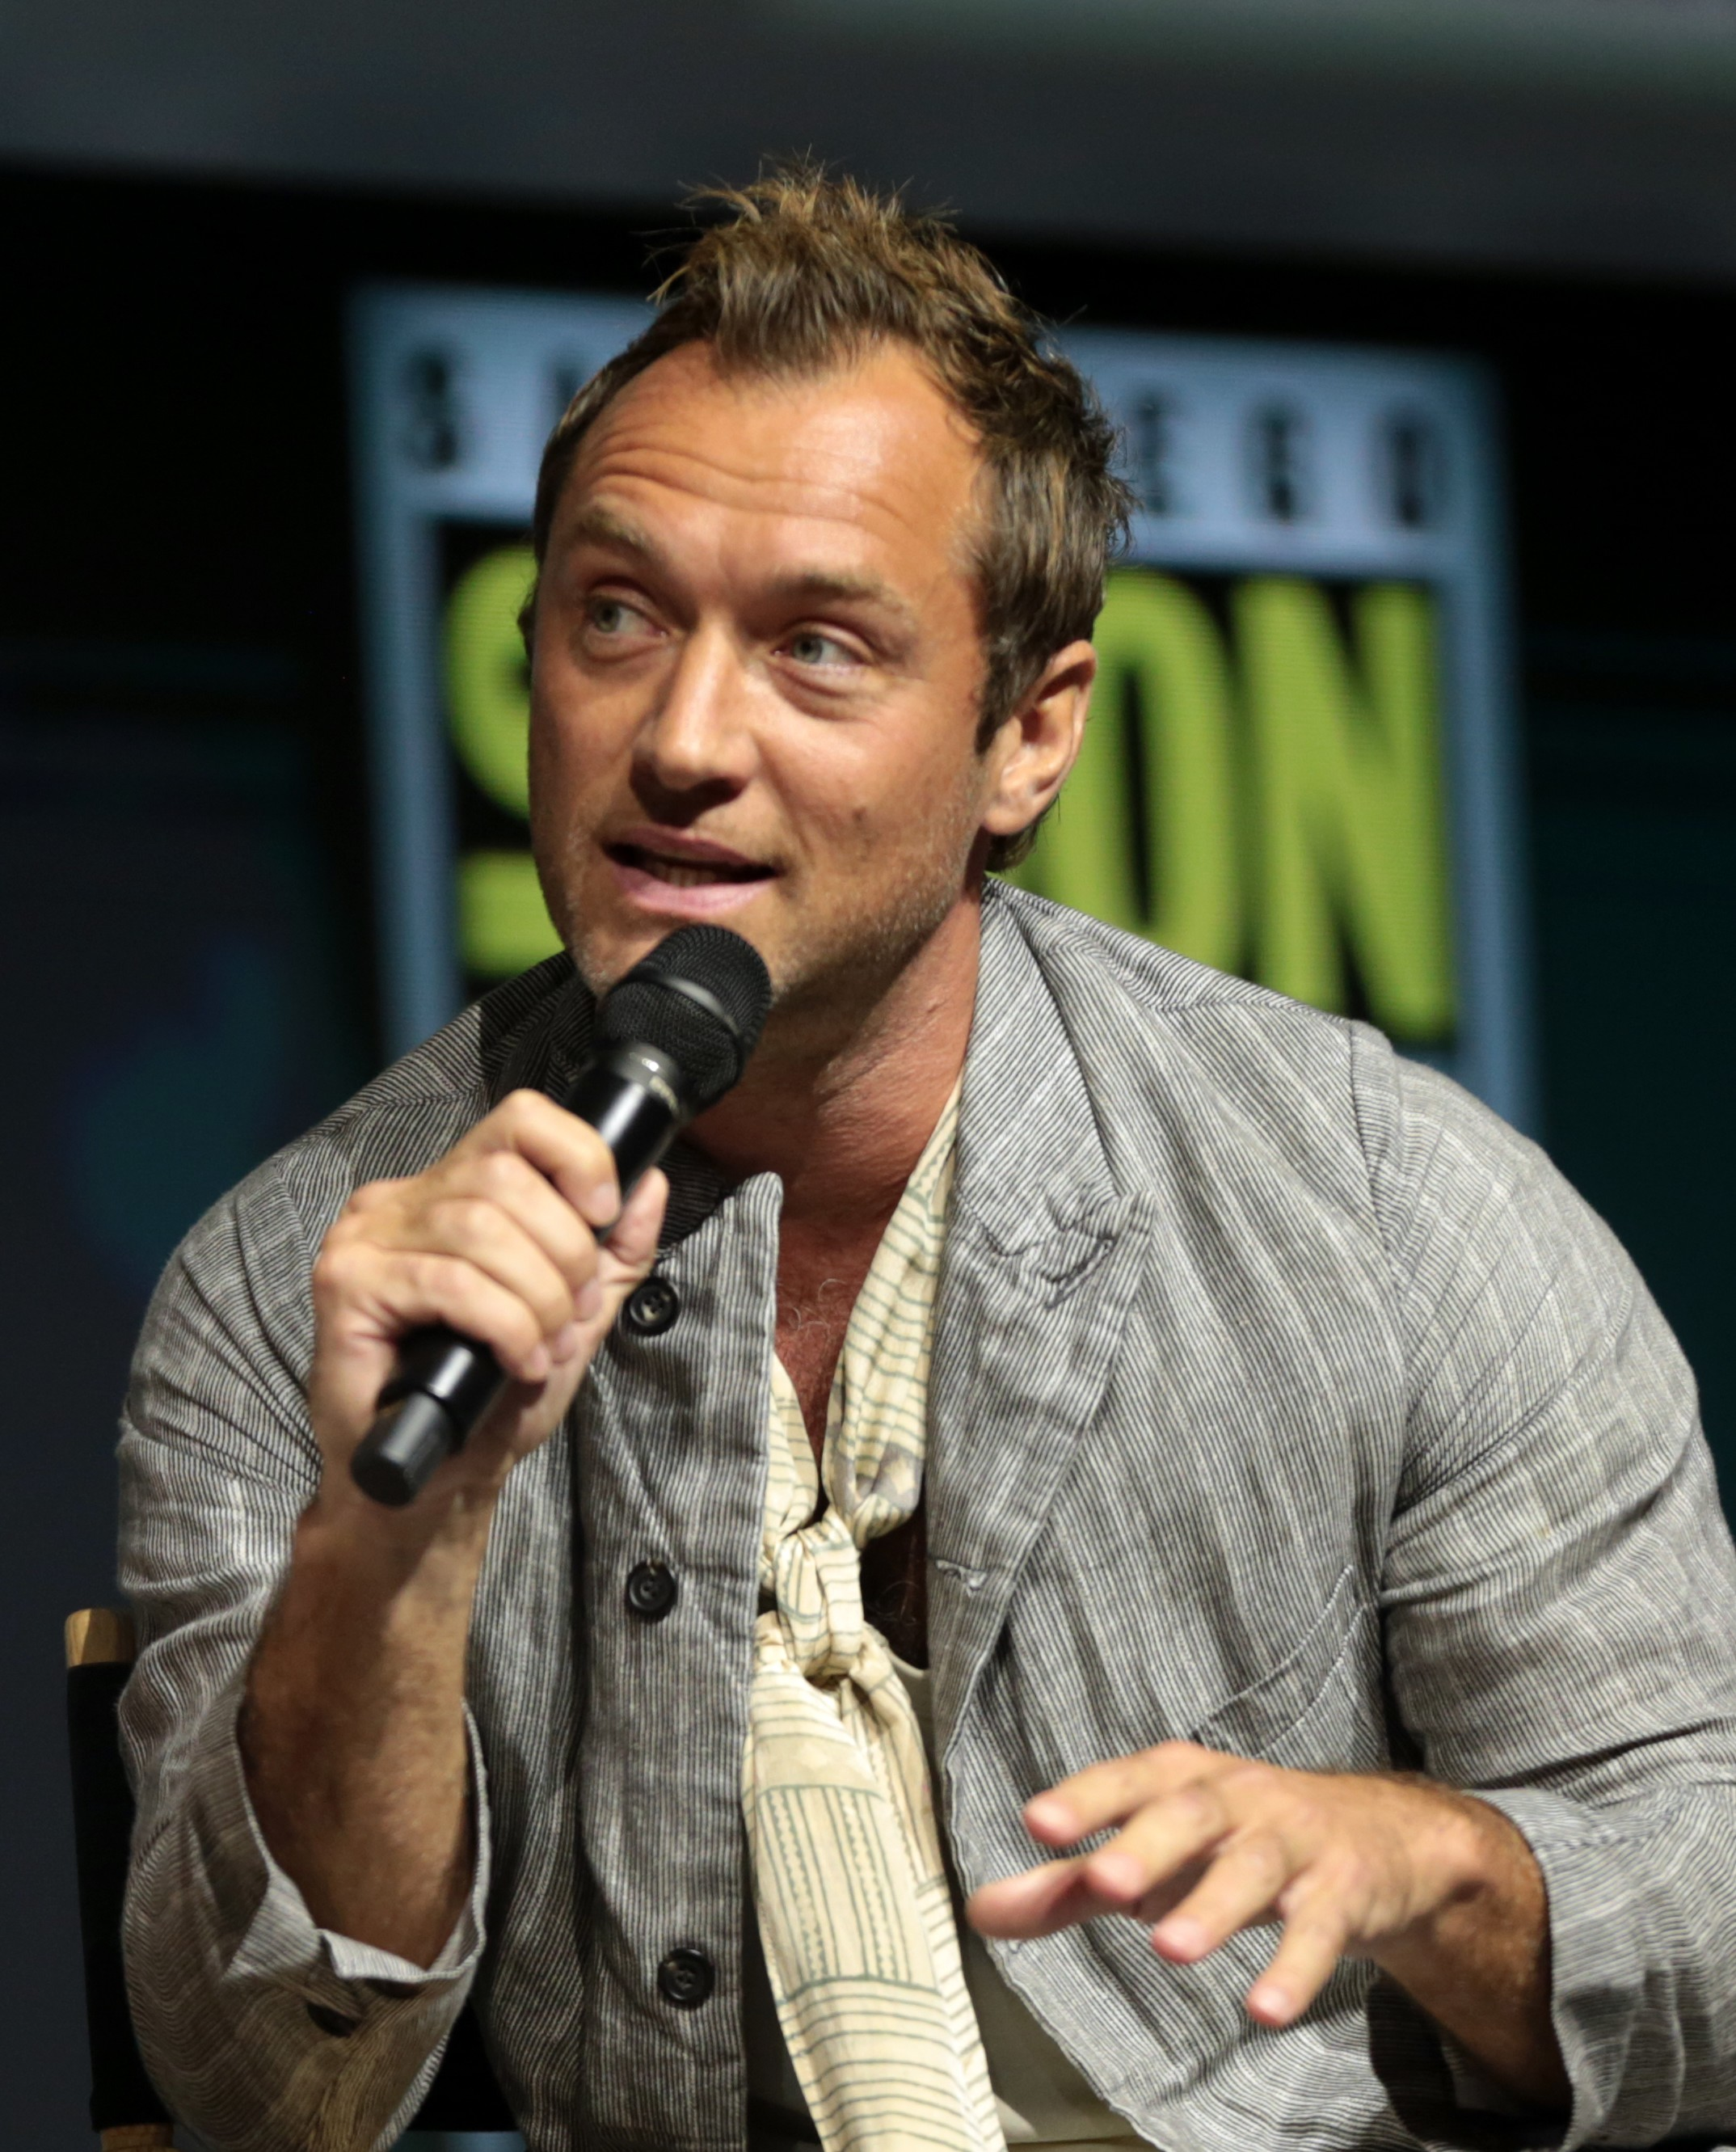 File:Jude Law 2018 (2).jpg - Wikimedia Commons